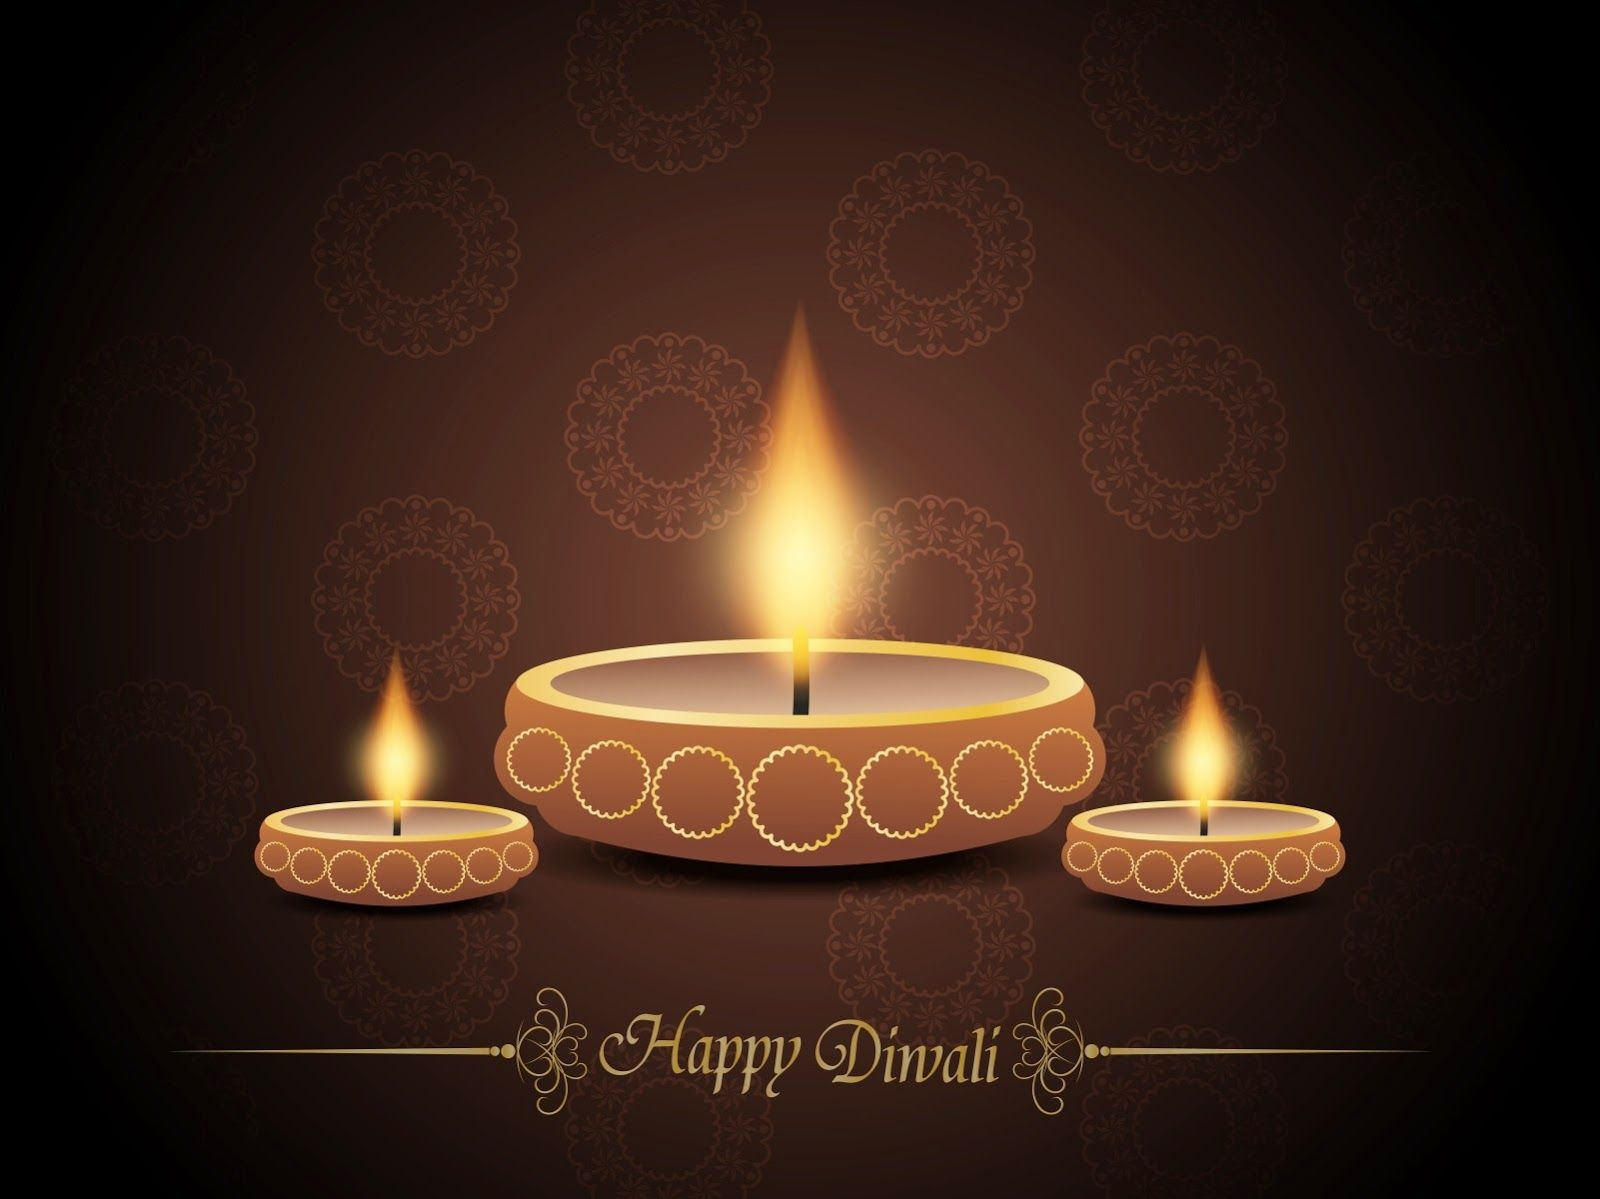 Free happy diwali greetings for share on whatsapp facebook to diwali kristyandbryce Gallery